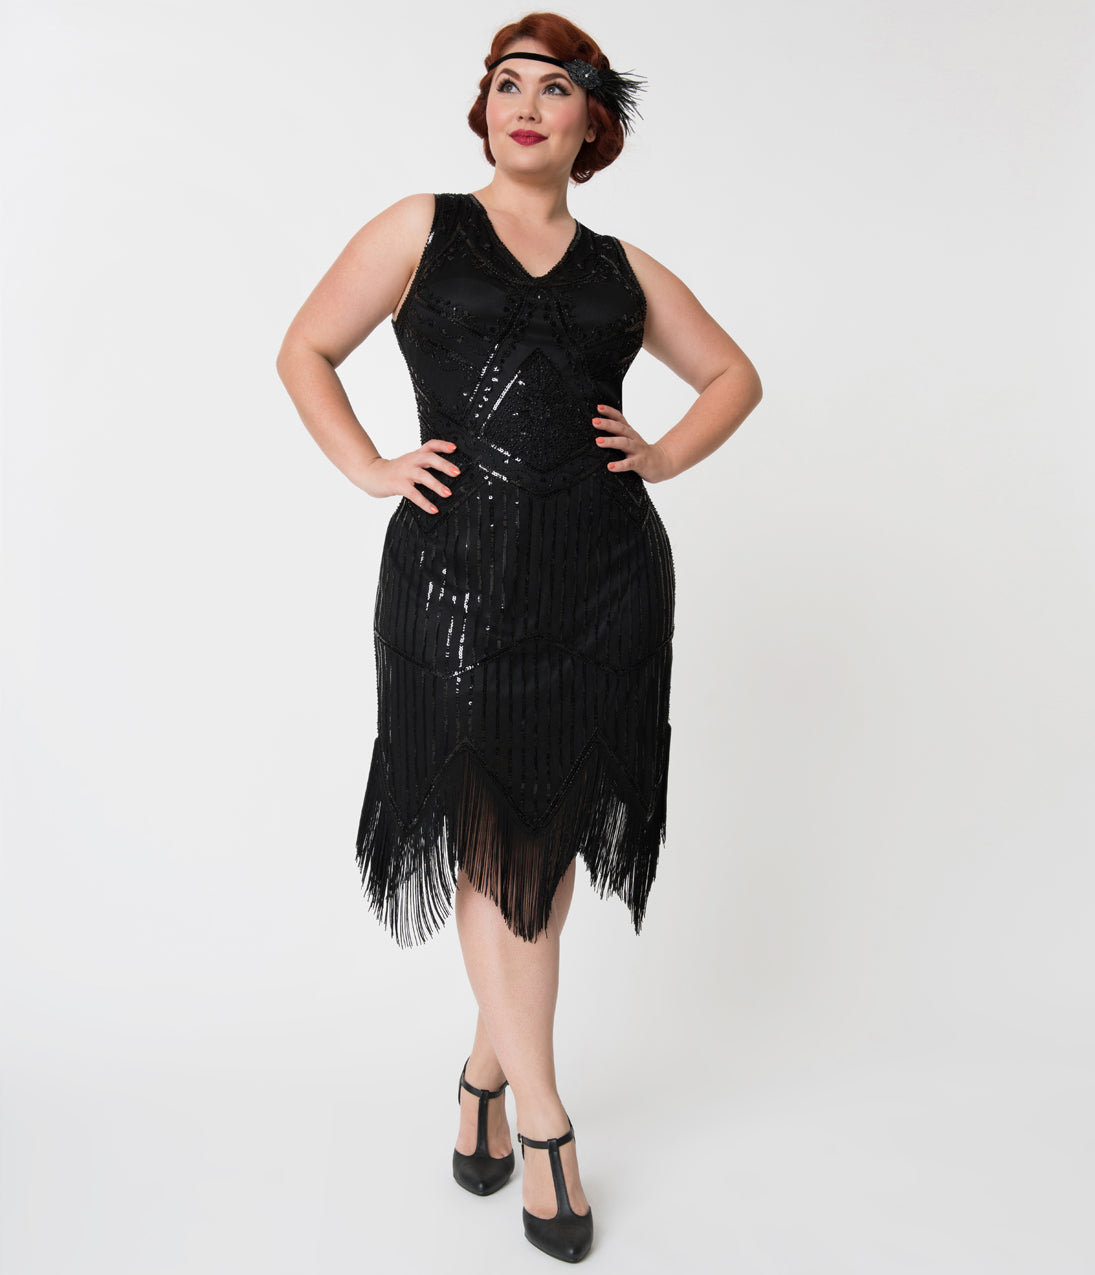 Downton Abbey Inspired Dresses Unique Vintage Plus Size 1920S Black Beaded Sequin Juliette Fringe Flapper Dress $68.00 AT vintagedancer.com